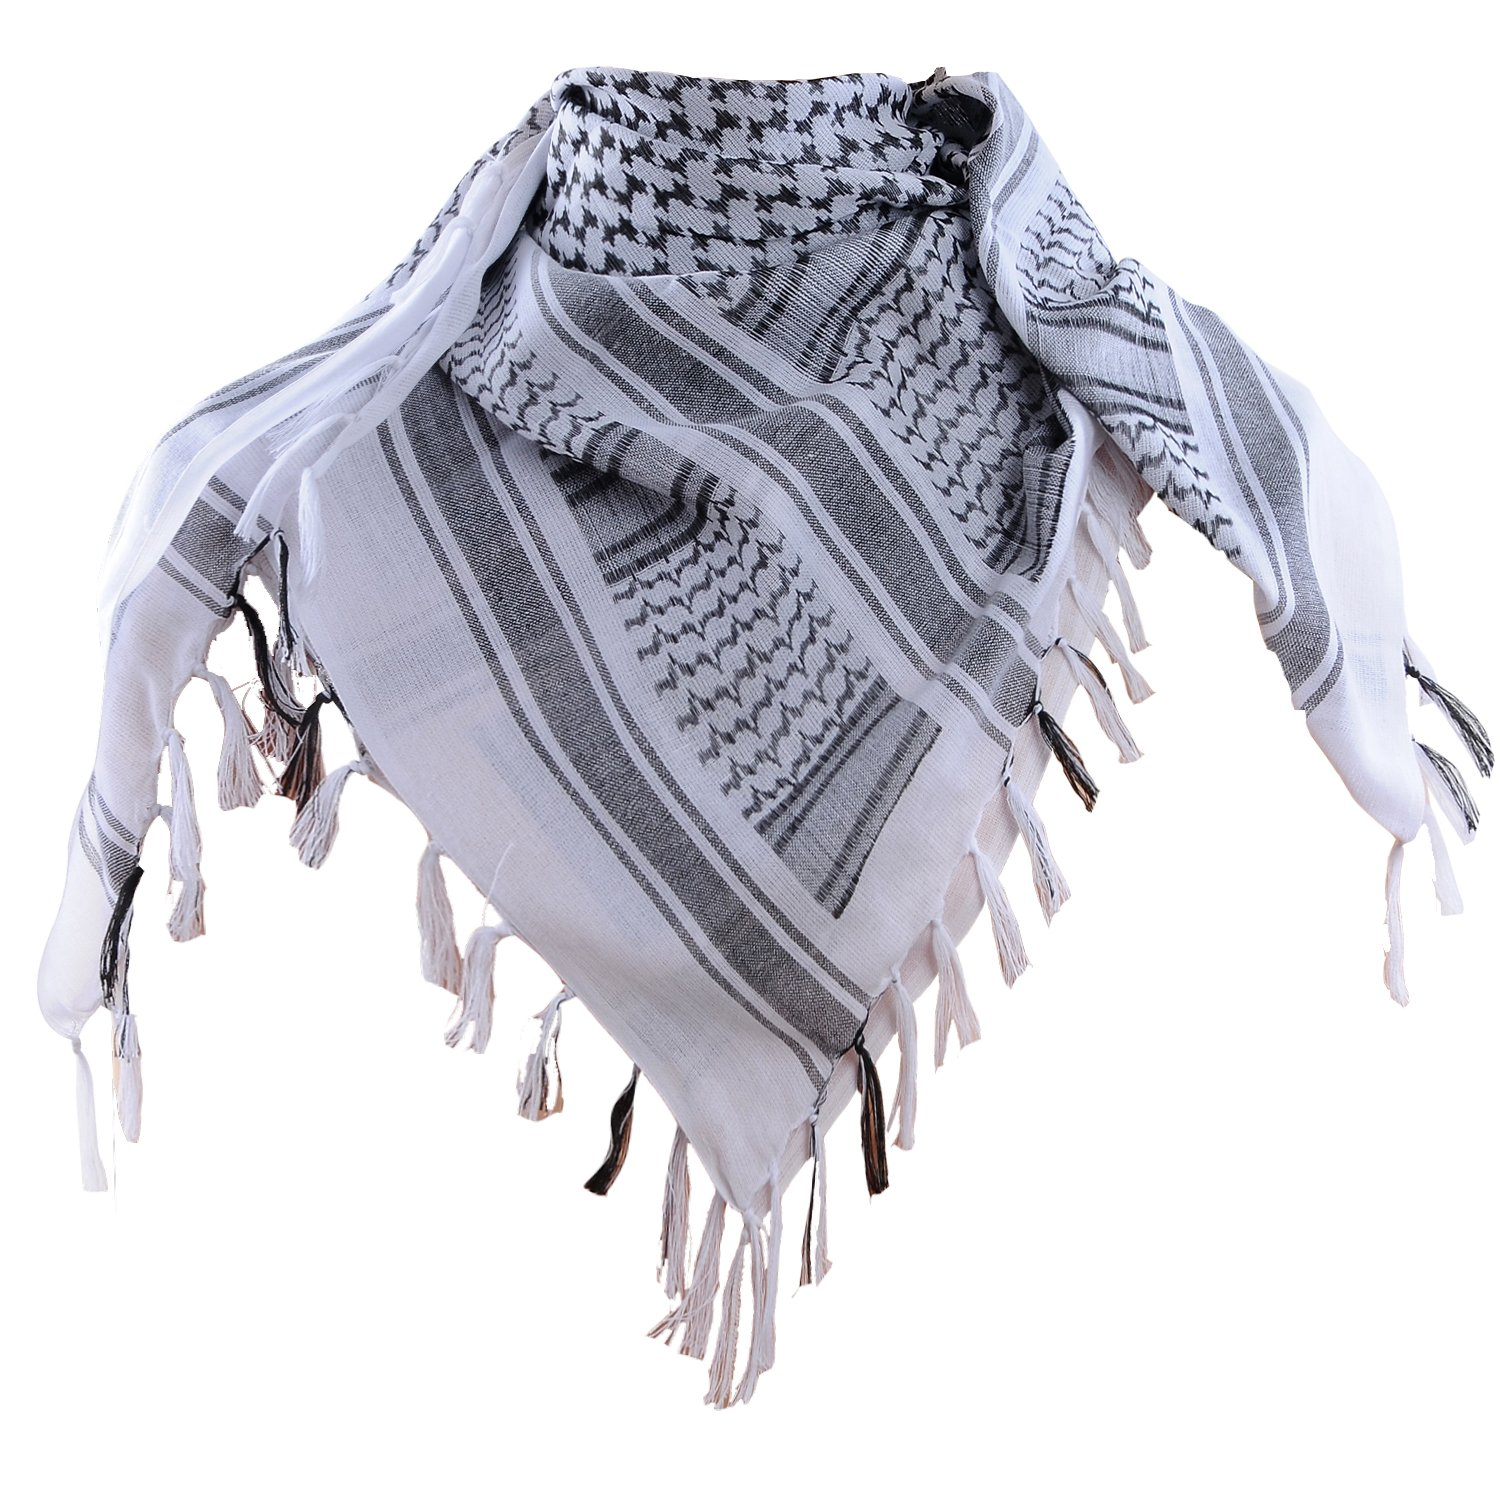 Micoop Premium Military Shemagh Tactical Desert Scarf Wrape (White)